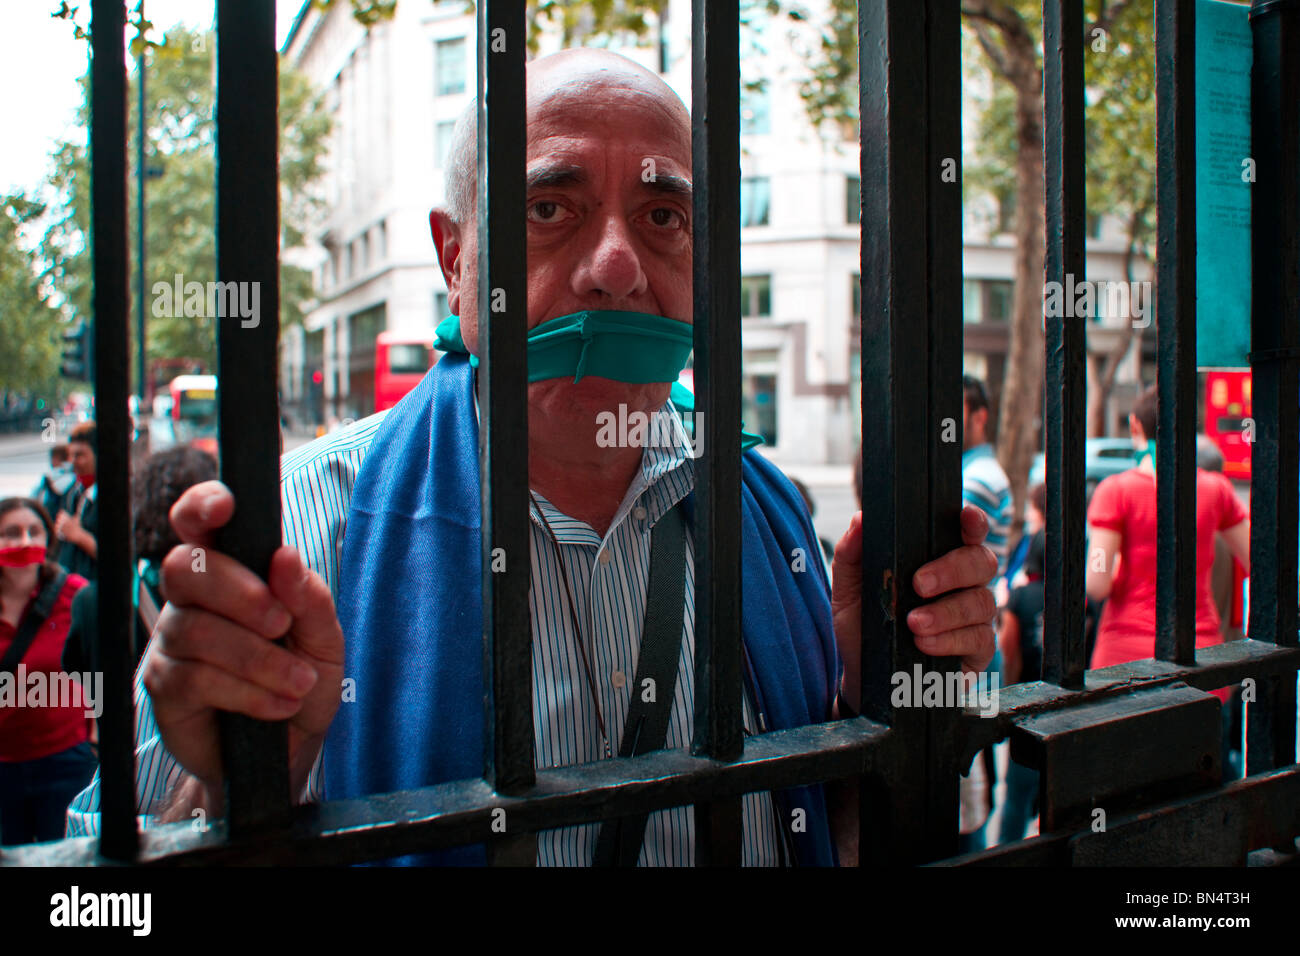 Italians protest in London against attacks on freedom of speech in Italy - Stock Image